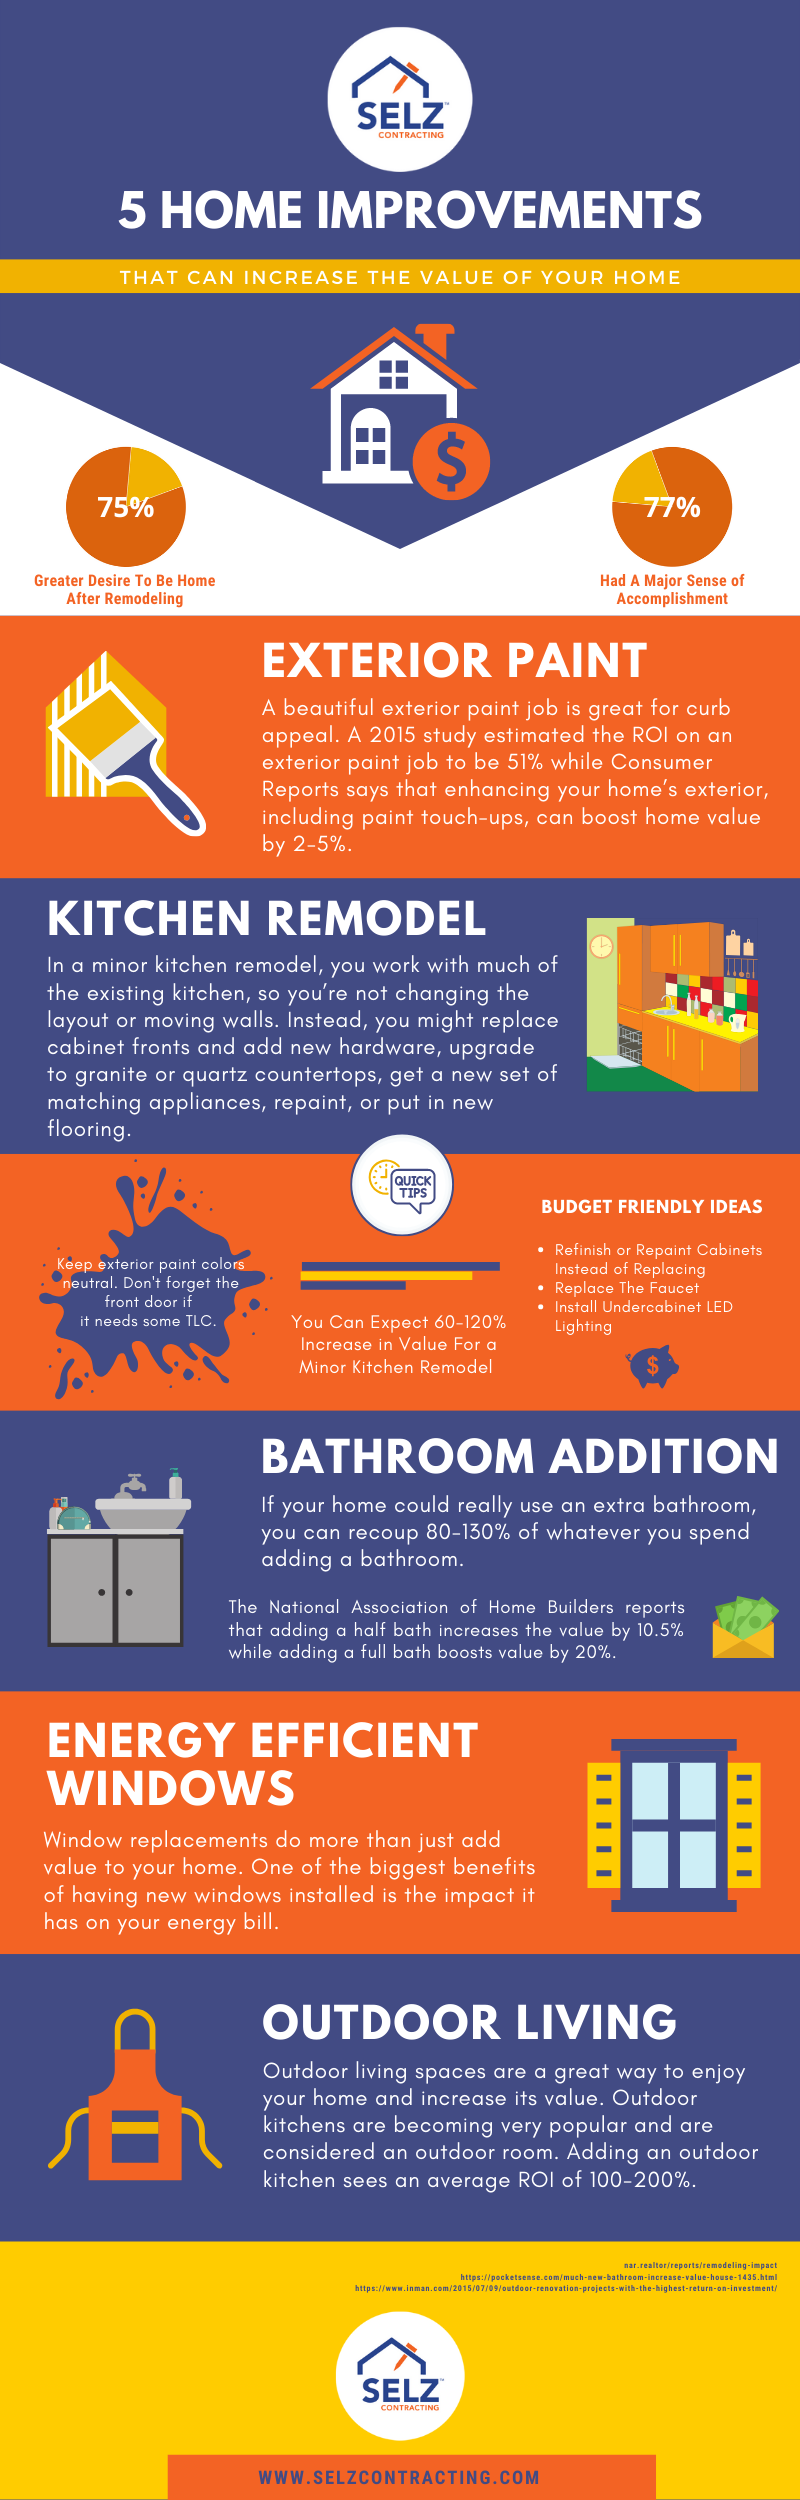 5 home improvement ideas